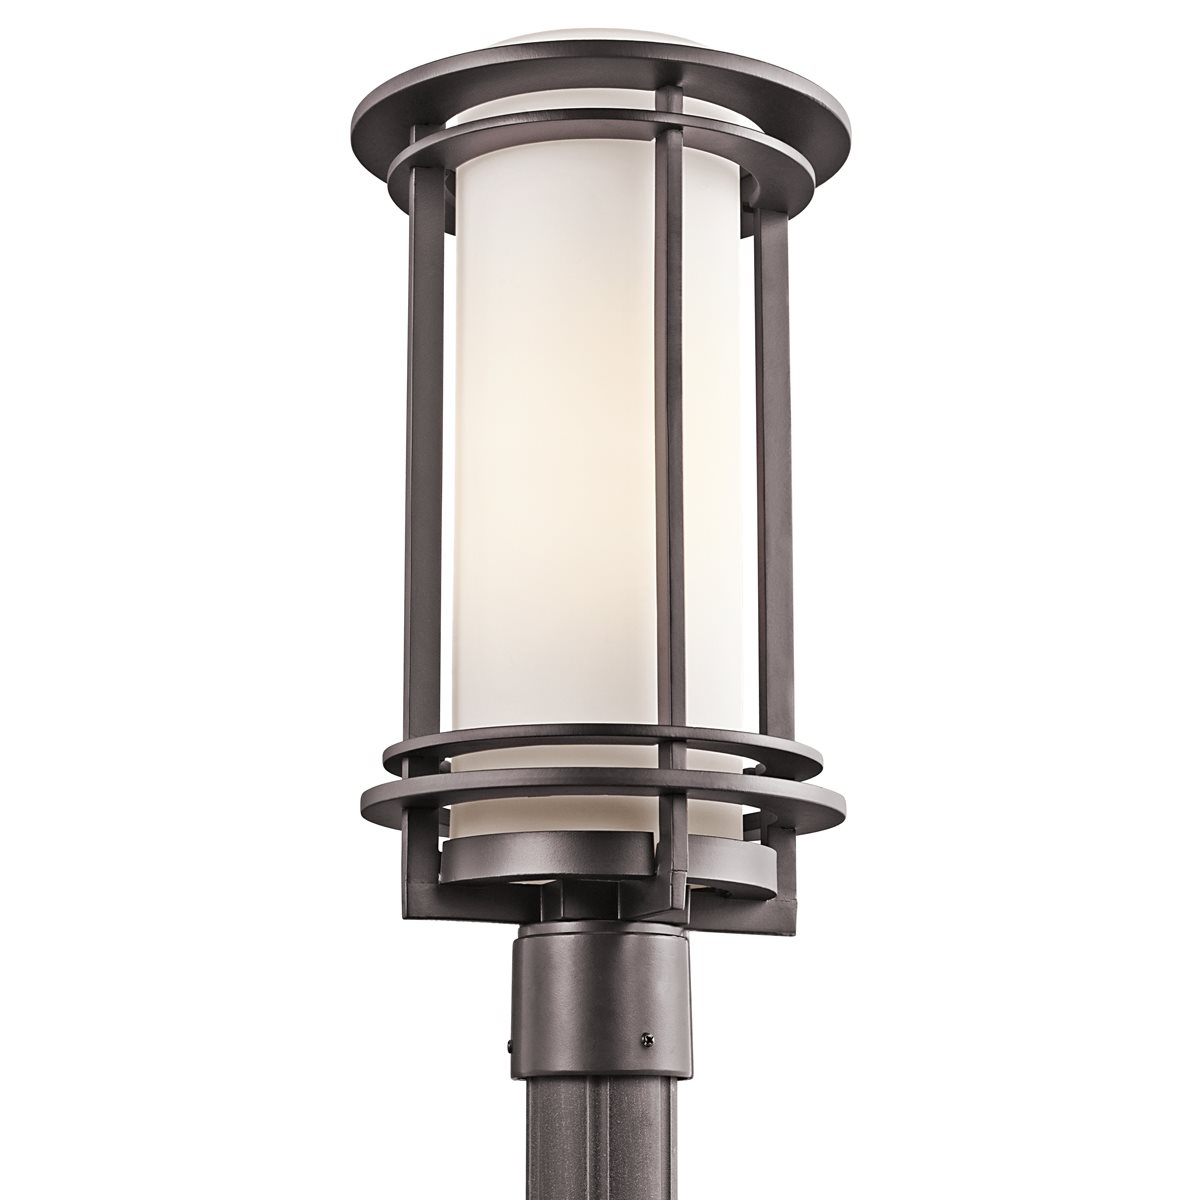 Kichler lighting 49349az pacific edge modern for Outdoor landscape lighting fixtures